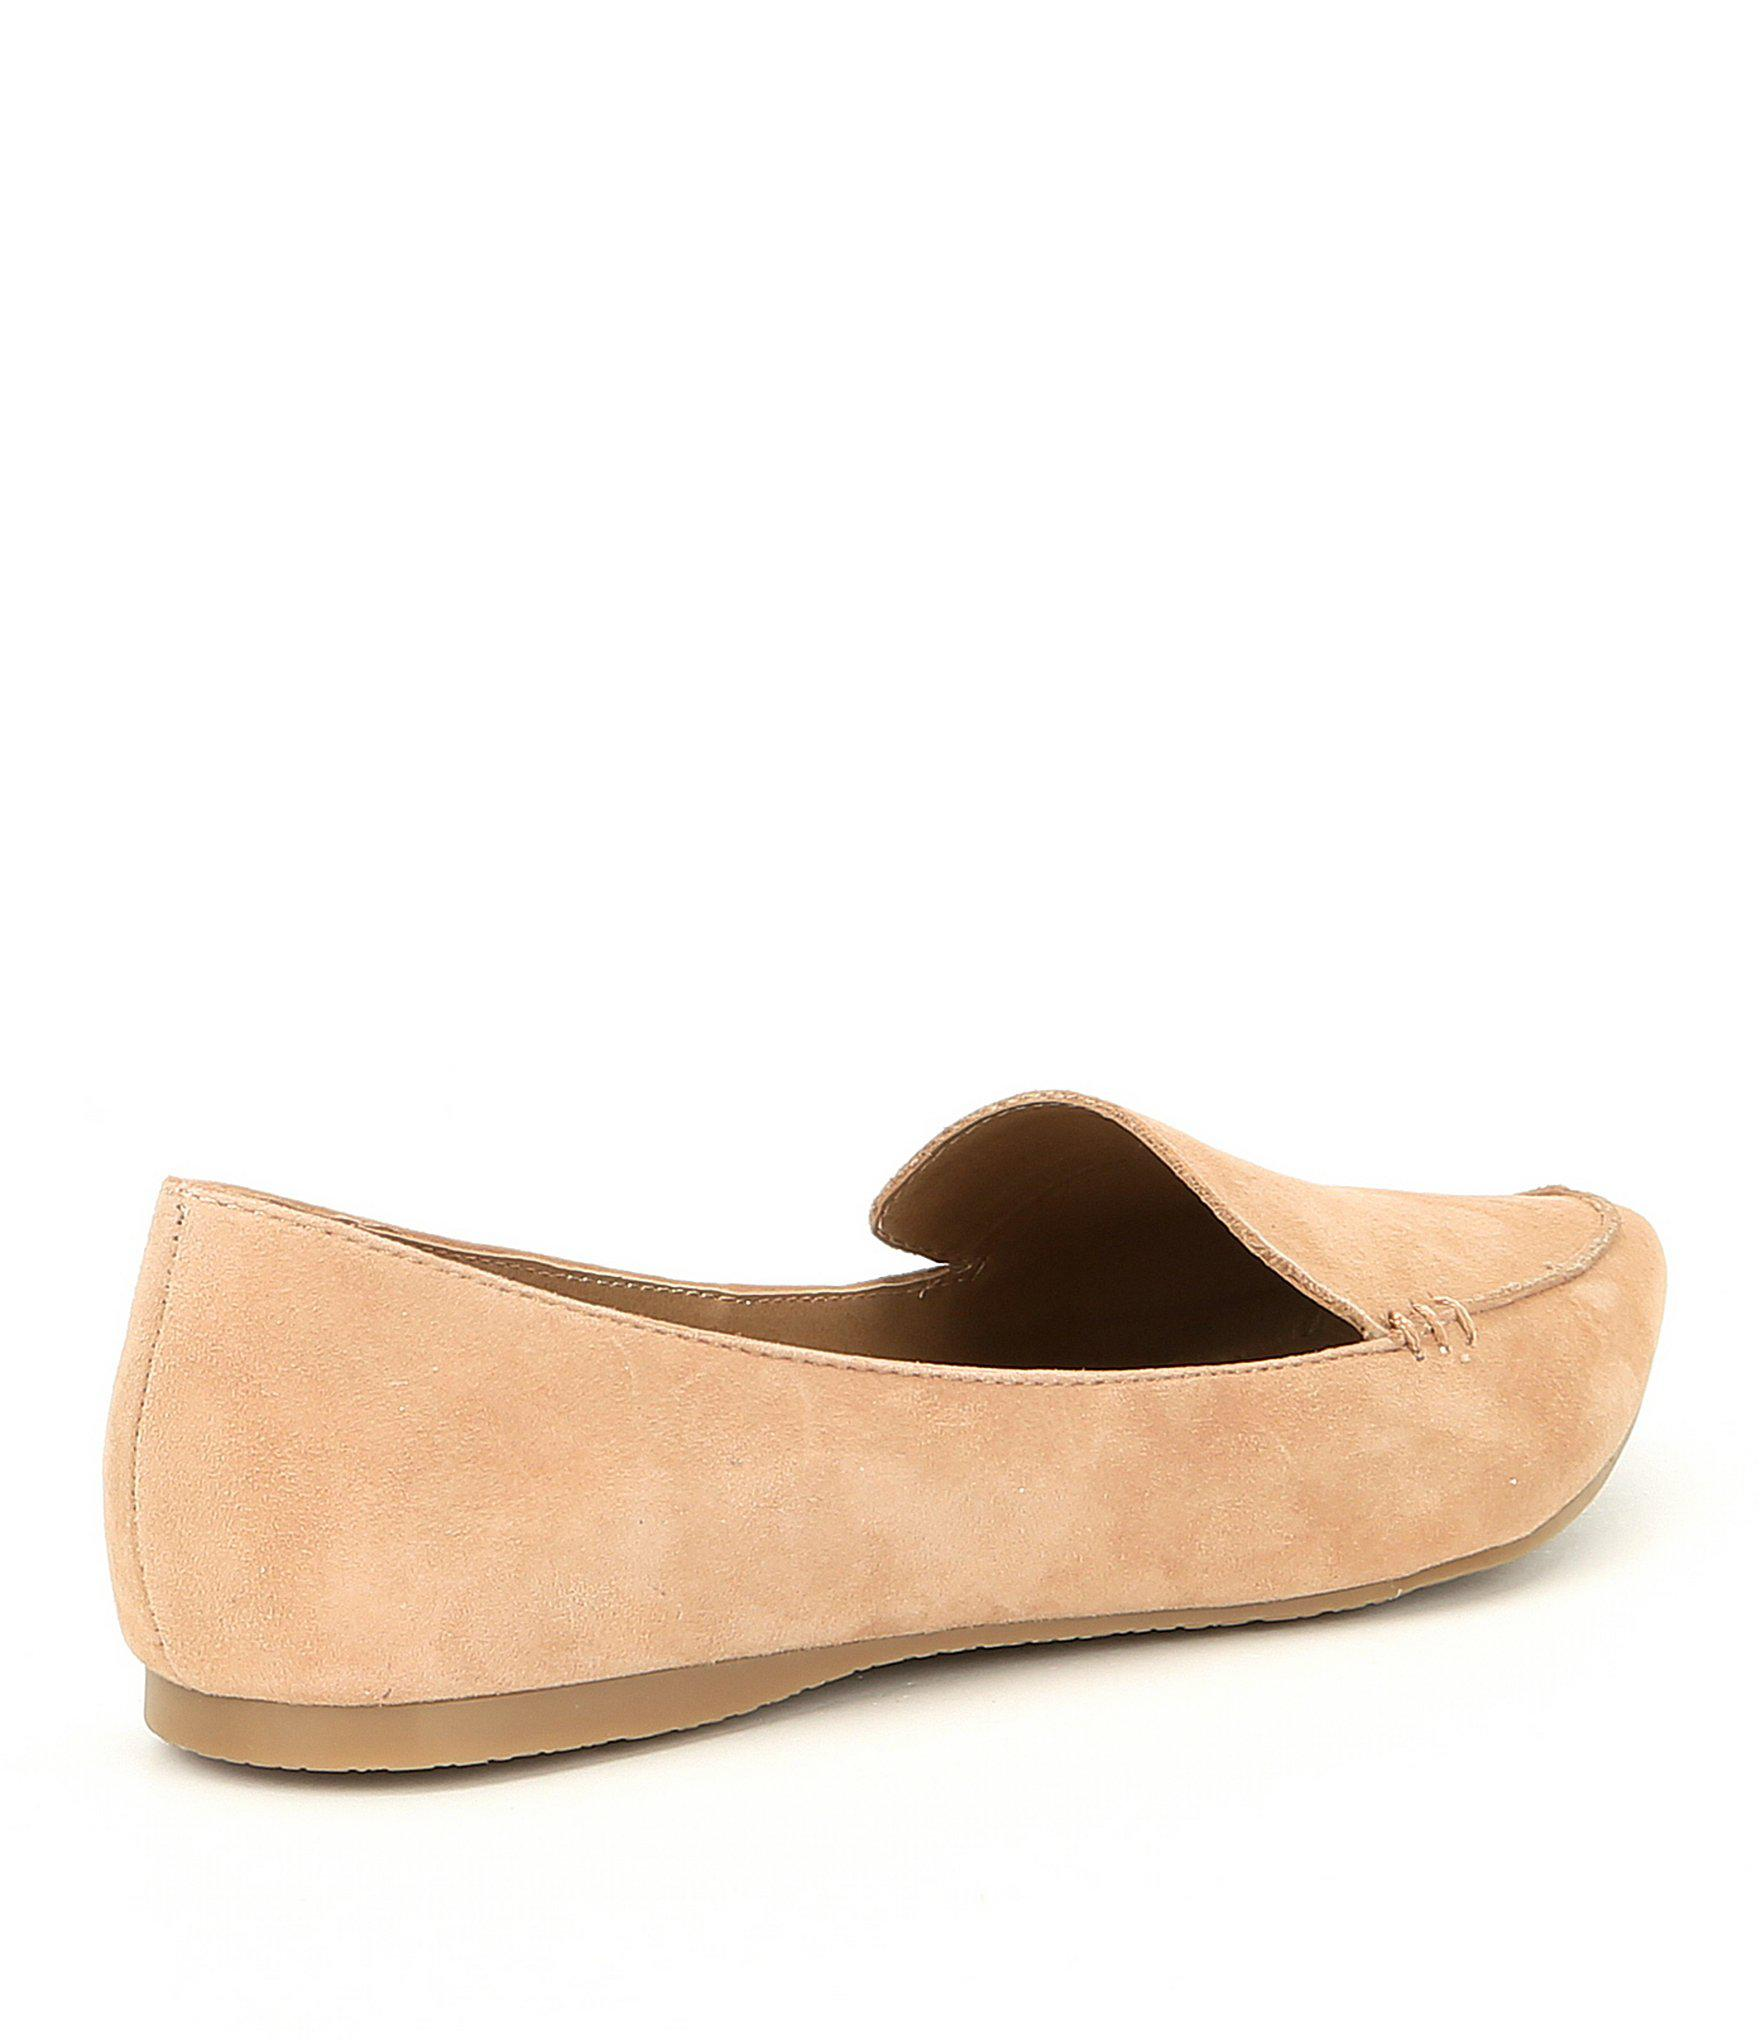 8a87f087270 Steve Madden - Natural Feather Suede Loafers - Lyst. View fullscreen